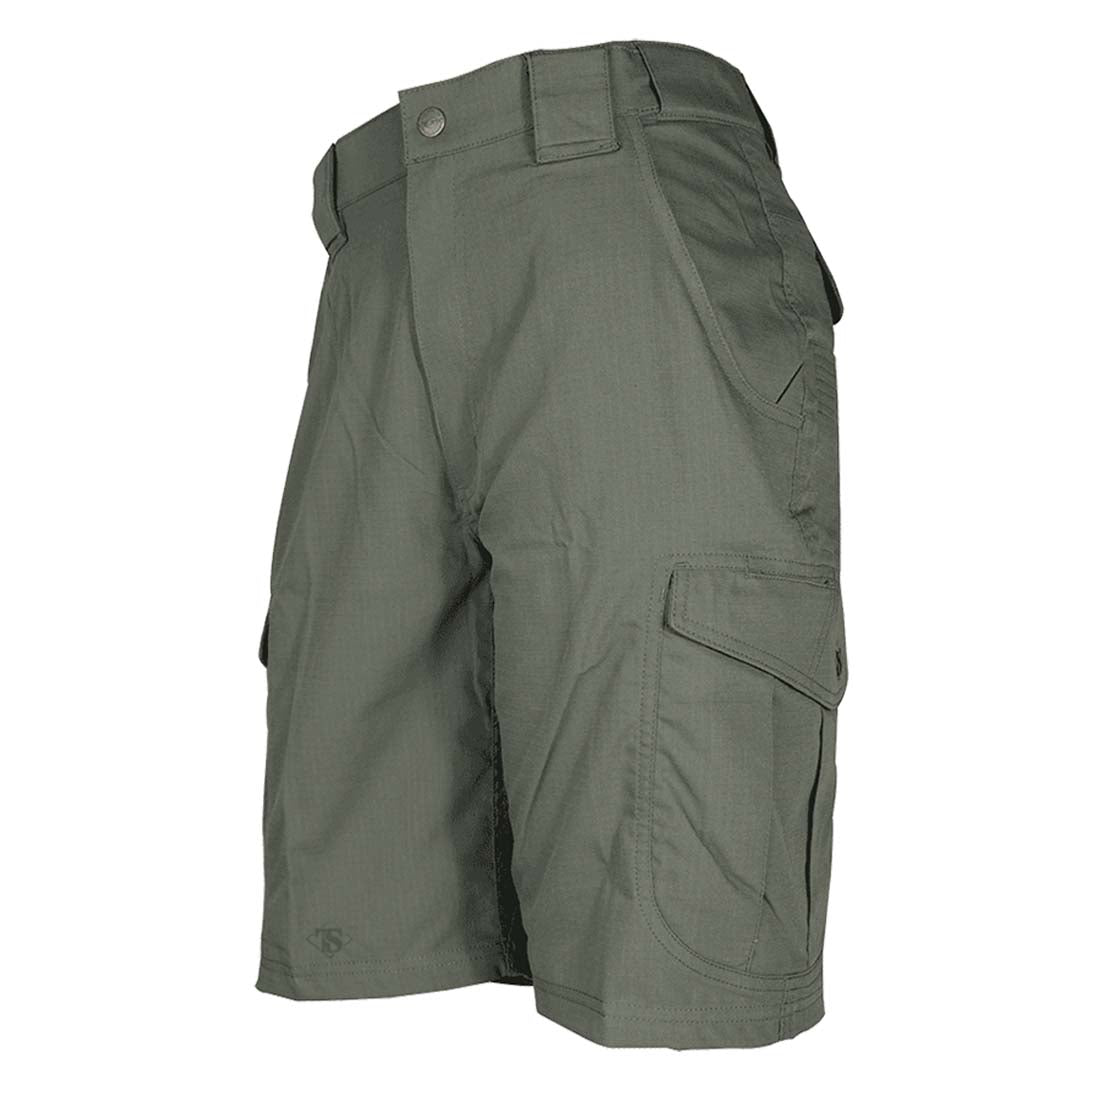 Tru-Spec 24/7 Series Men's Ascent Shorts